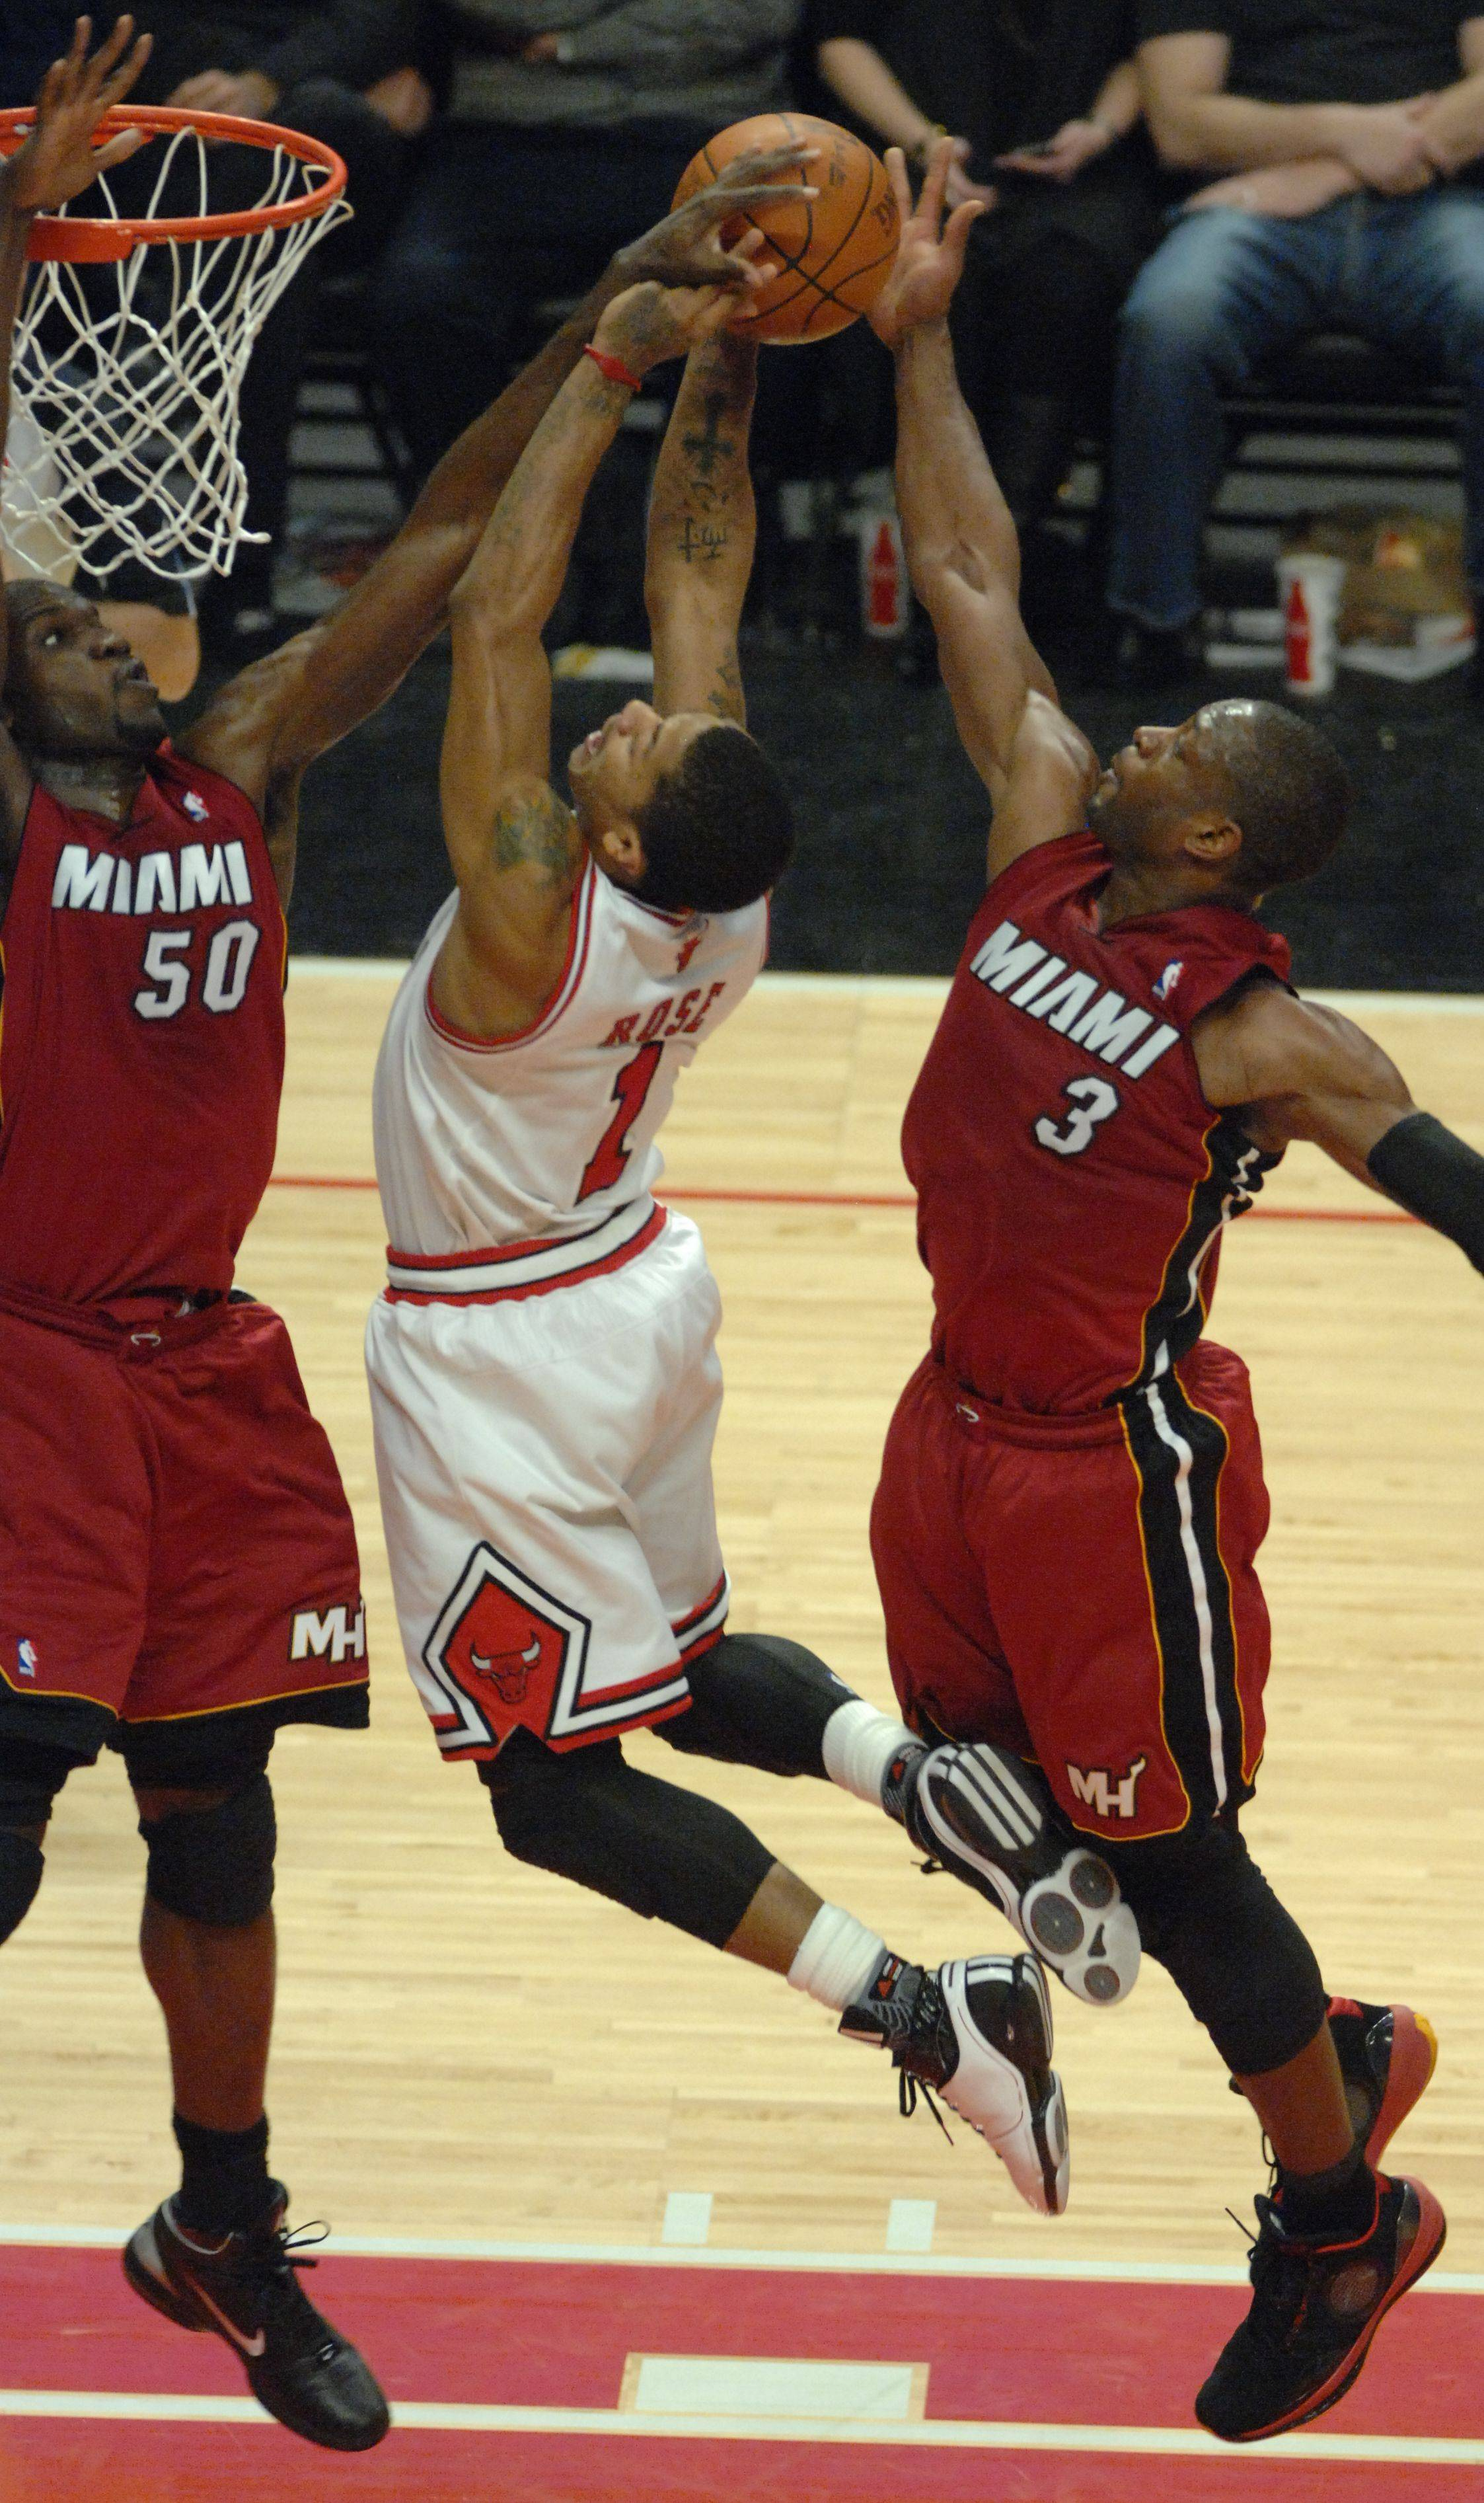 Derrick Rose drives to the basket while surrounded by the Heat's Joel Anthony (50) and Dwyane Wade (3) during Saturday's game at the United Center. Rose finished with 34 points, and Wade had 33 as the Bulls prevailed, 99-96.